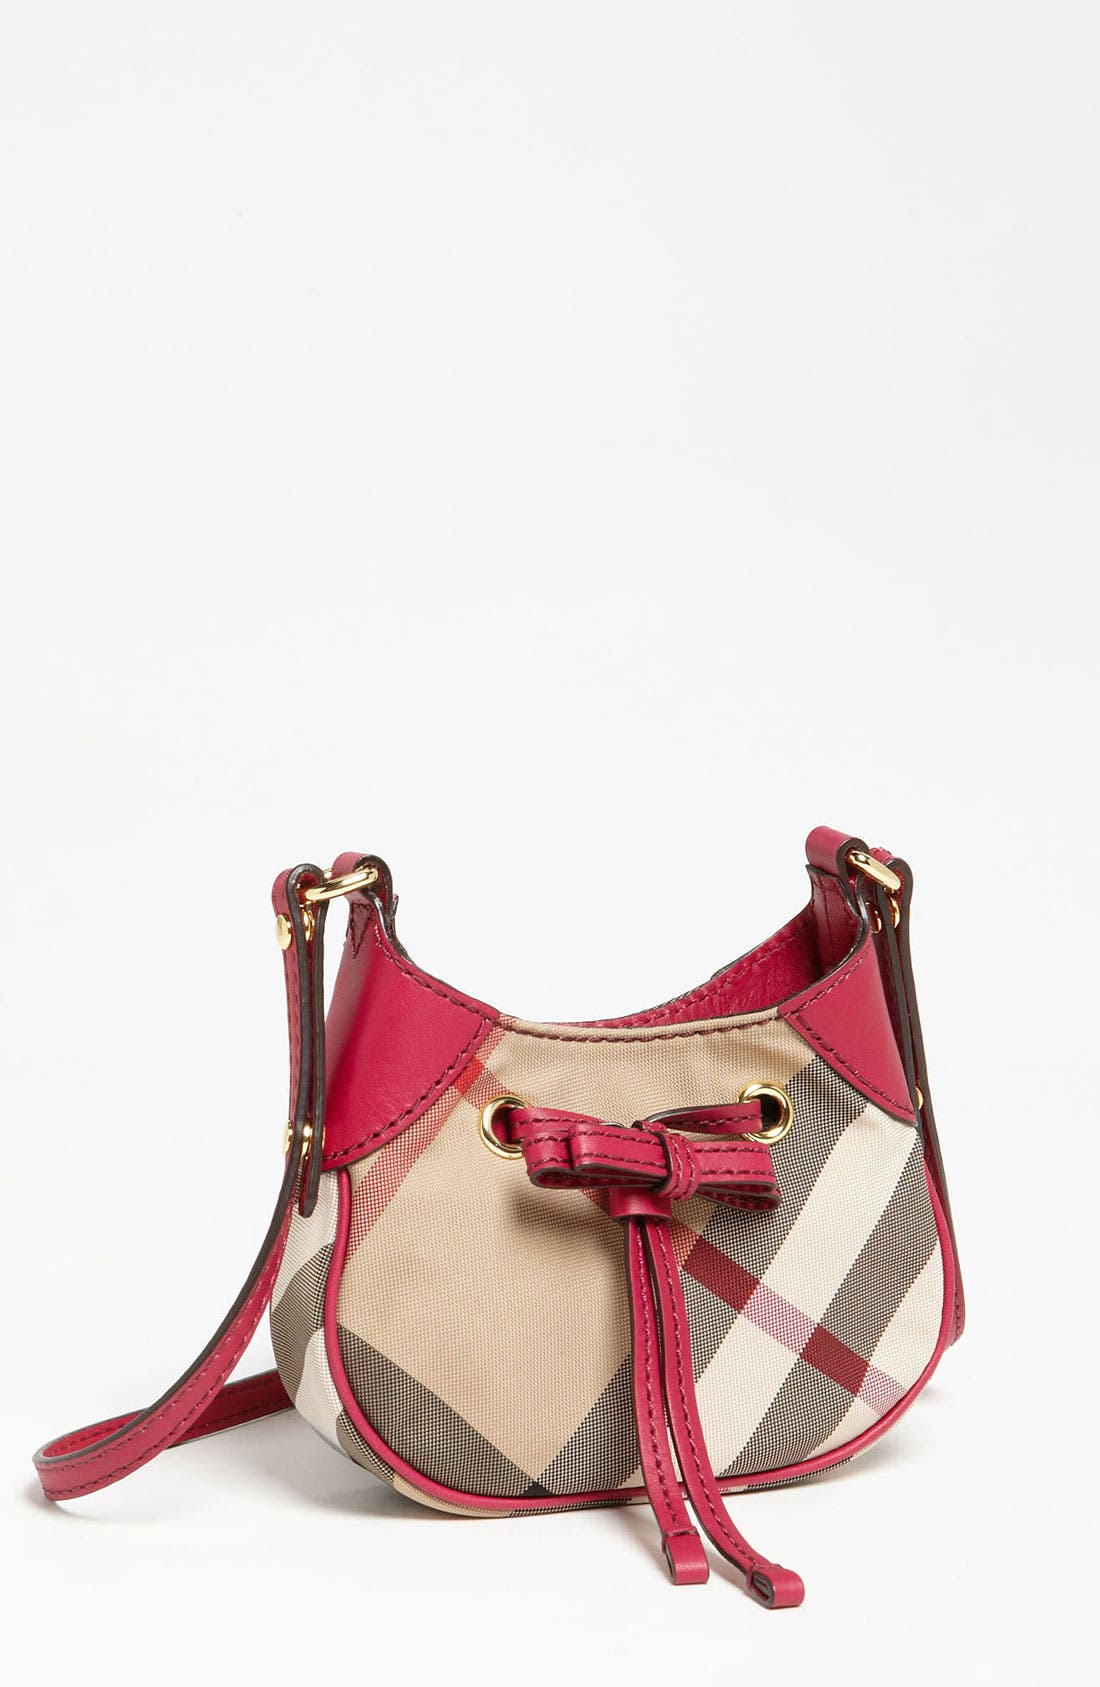 Main Image - Burberry 'Ruby' Mini Shoulder Bag (Girls)